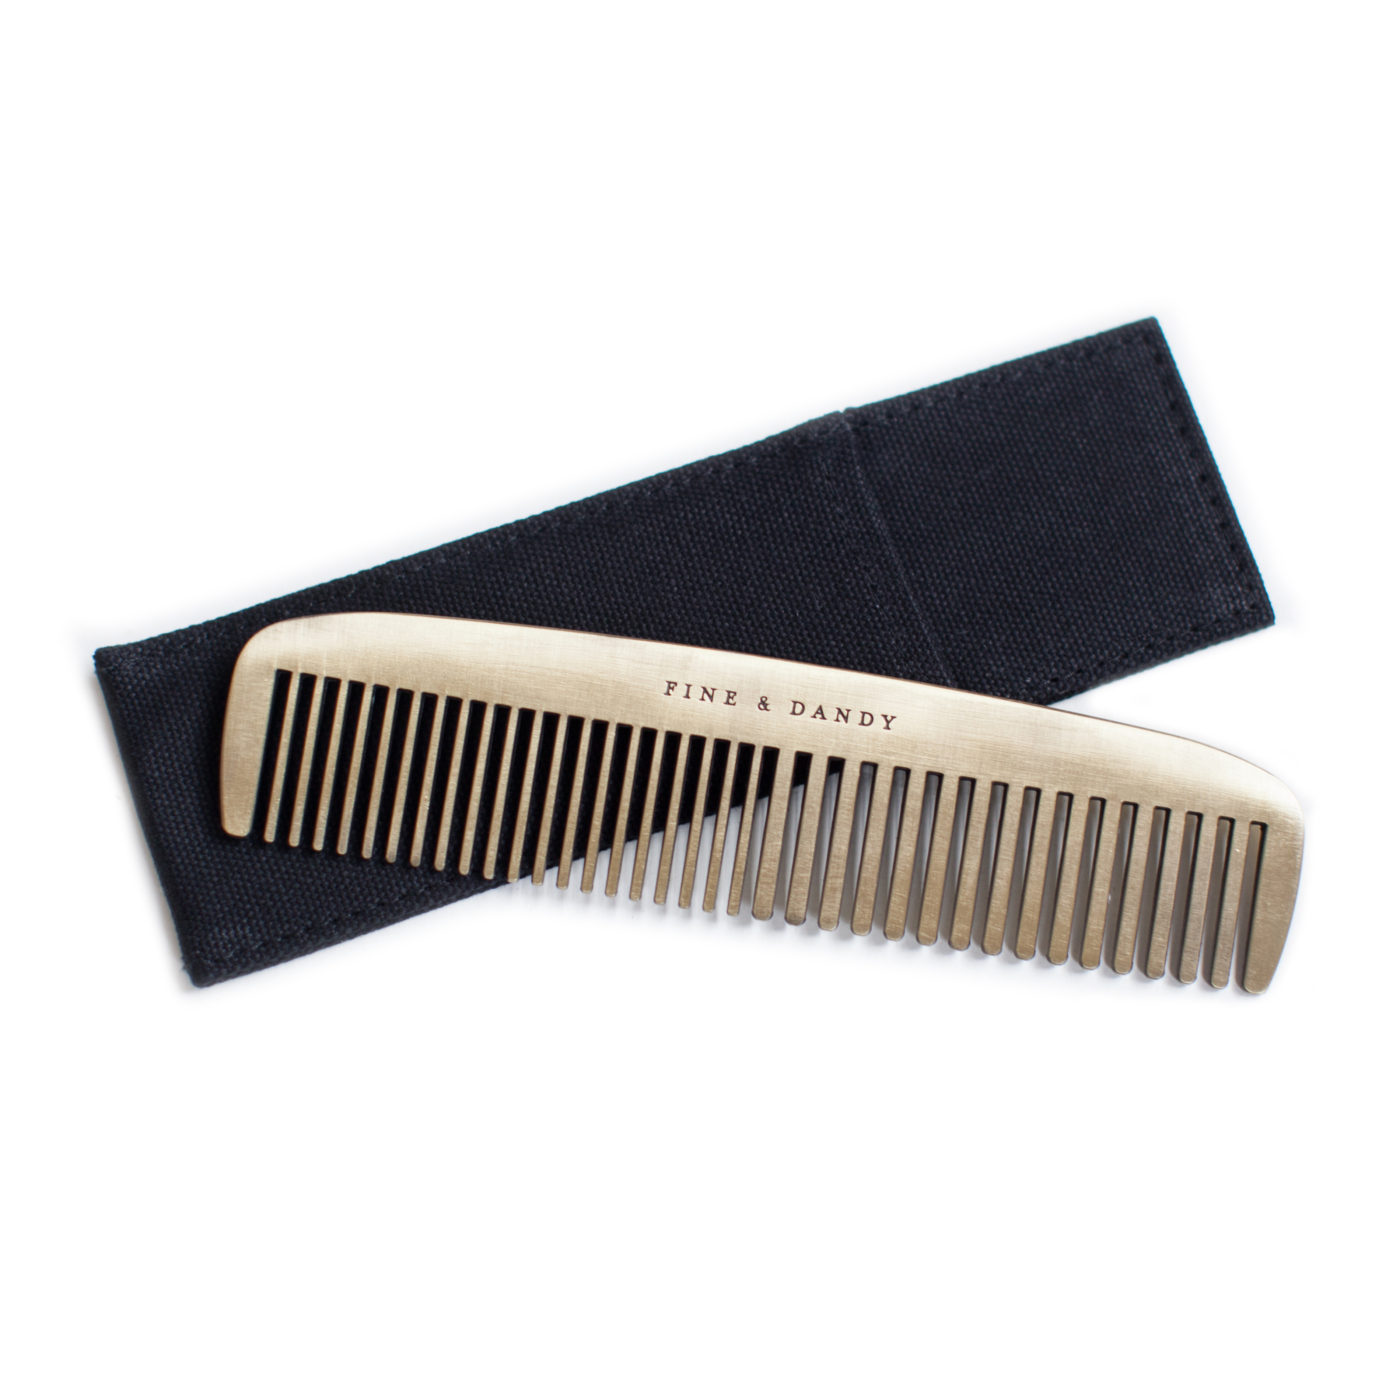 brass comb fine & dandy from izola gift for men